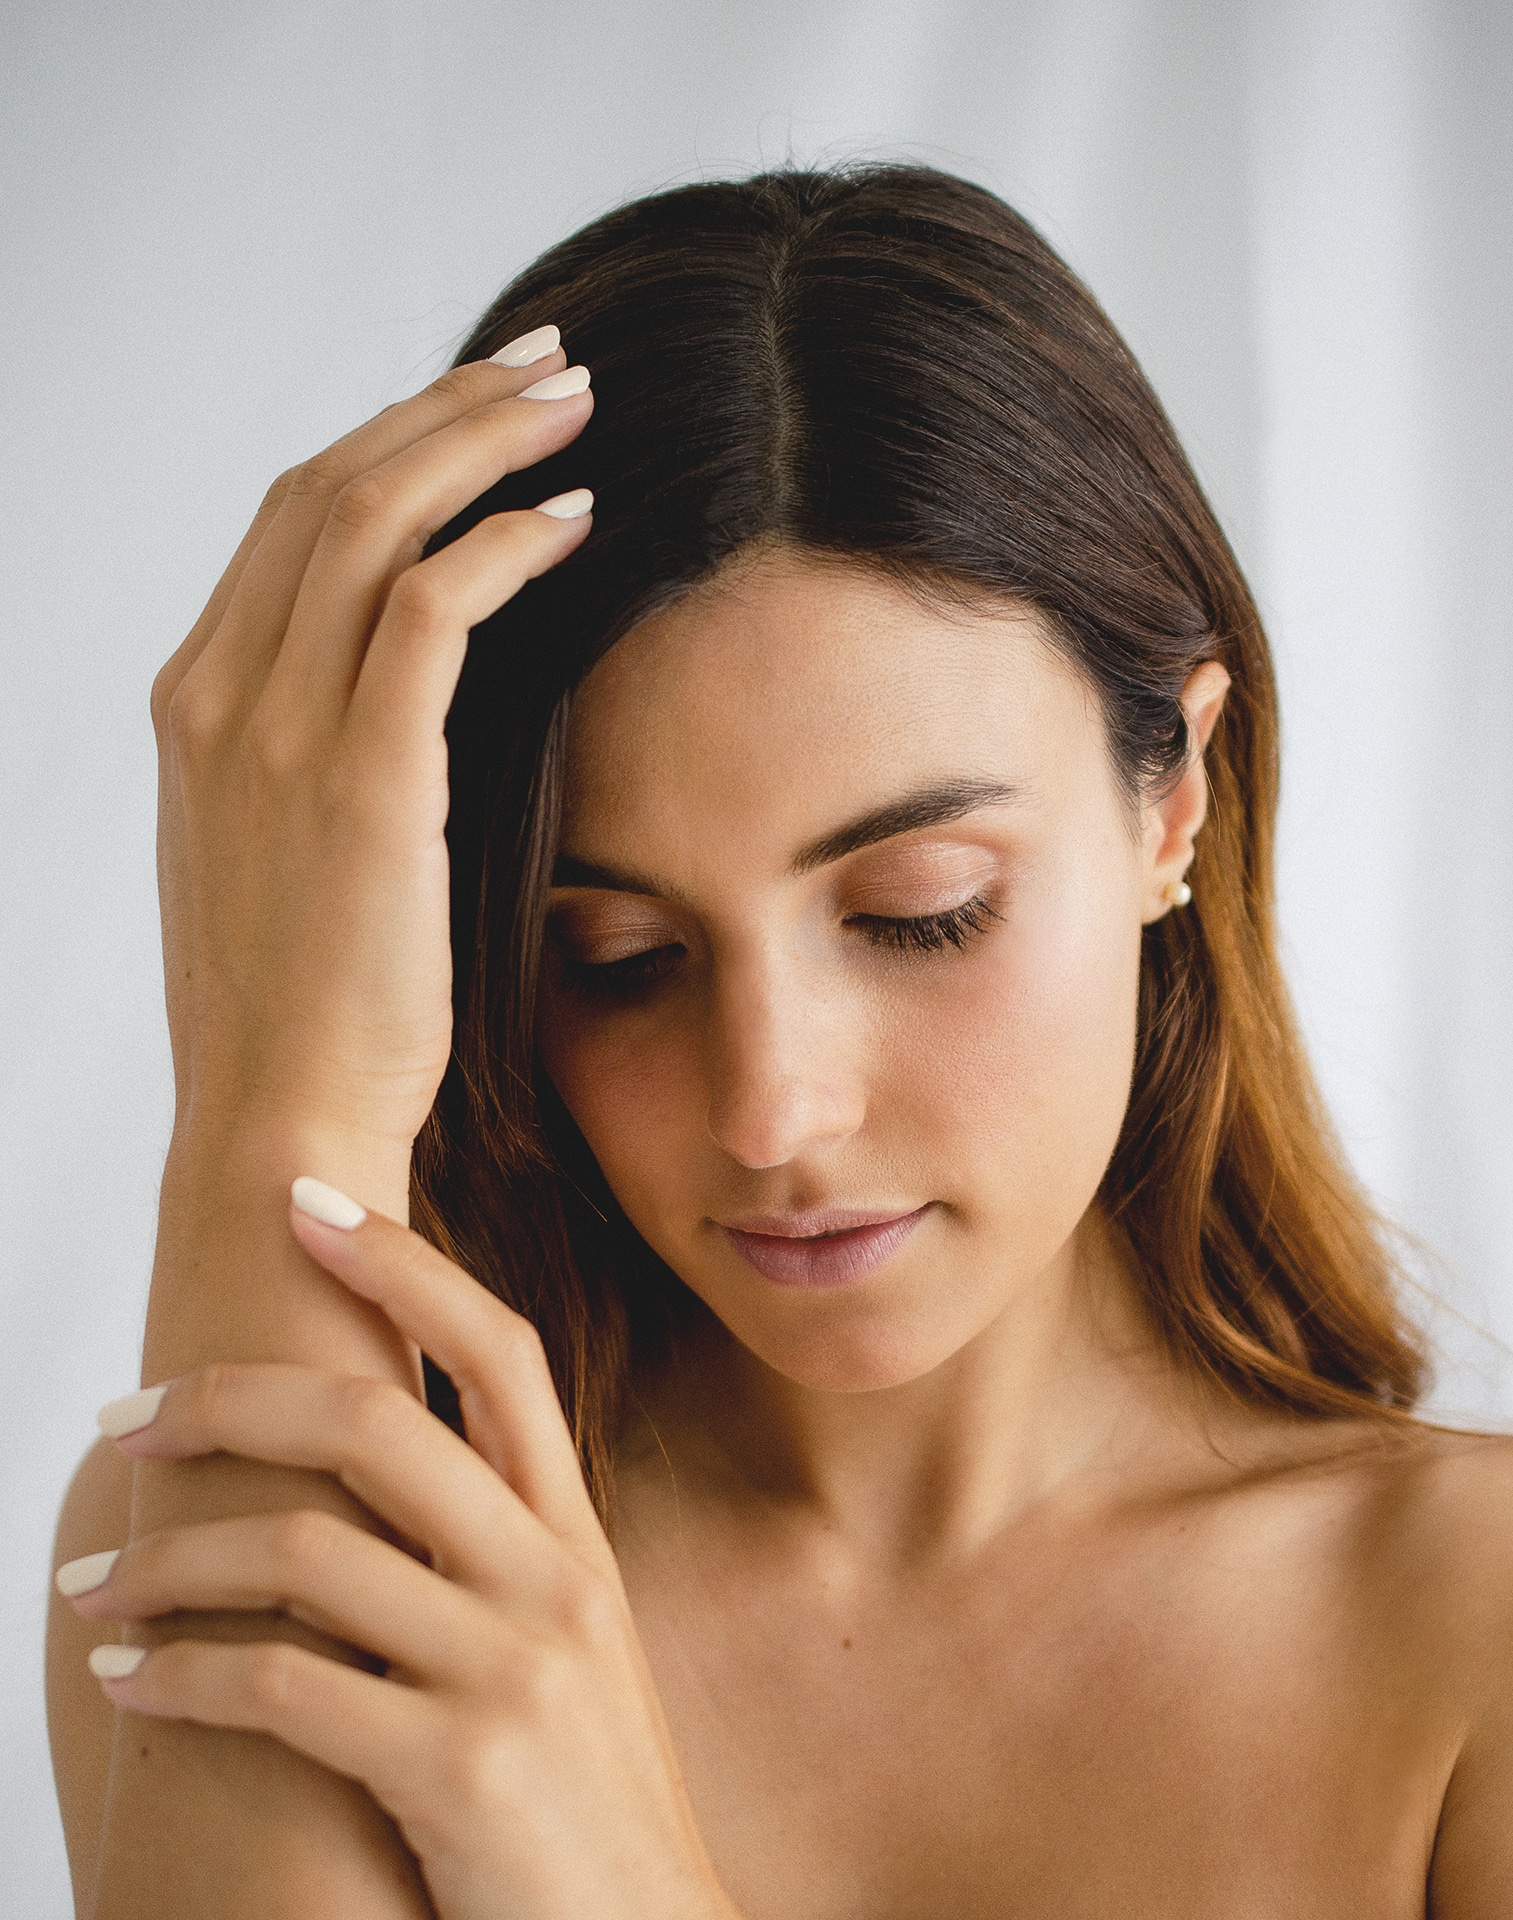 young woman holding her hands to her head, wearing white nail polish by sienna